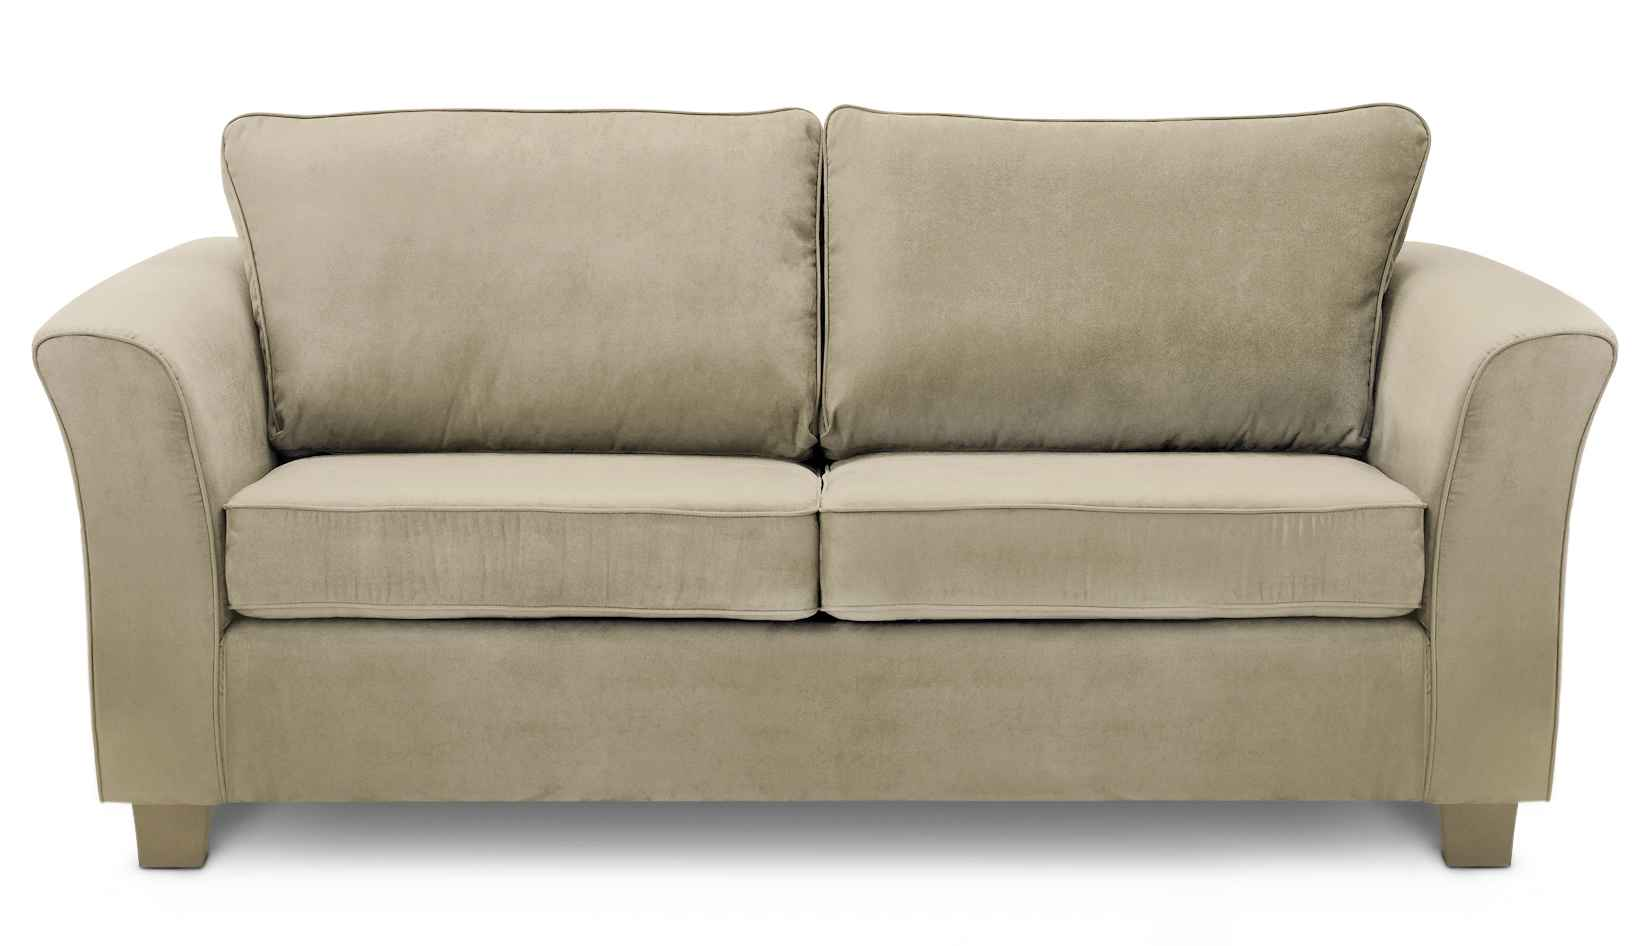 Cheap Sofa Chairs Overstock Leather Couches Feel The Home